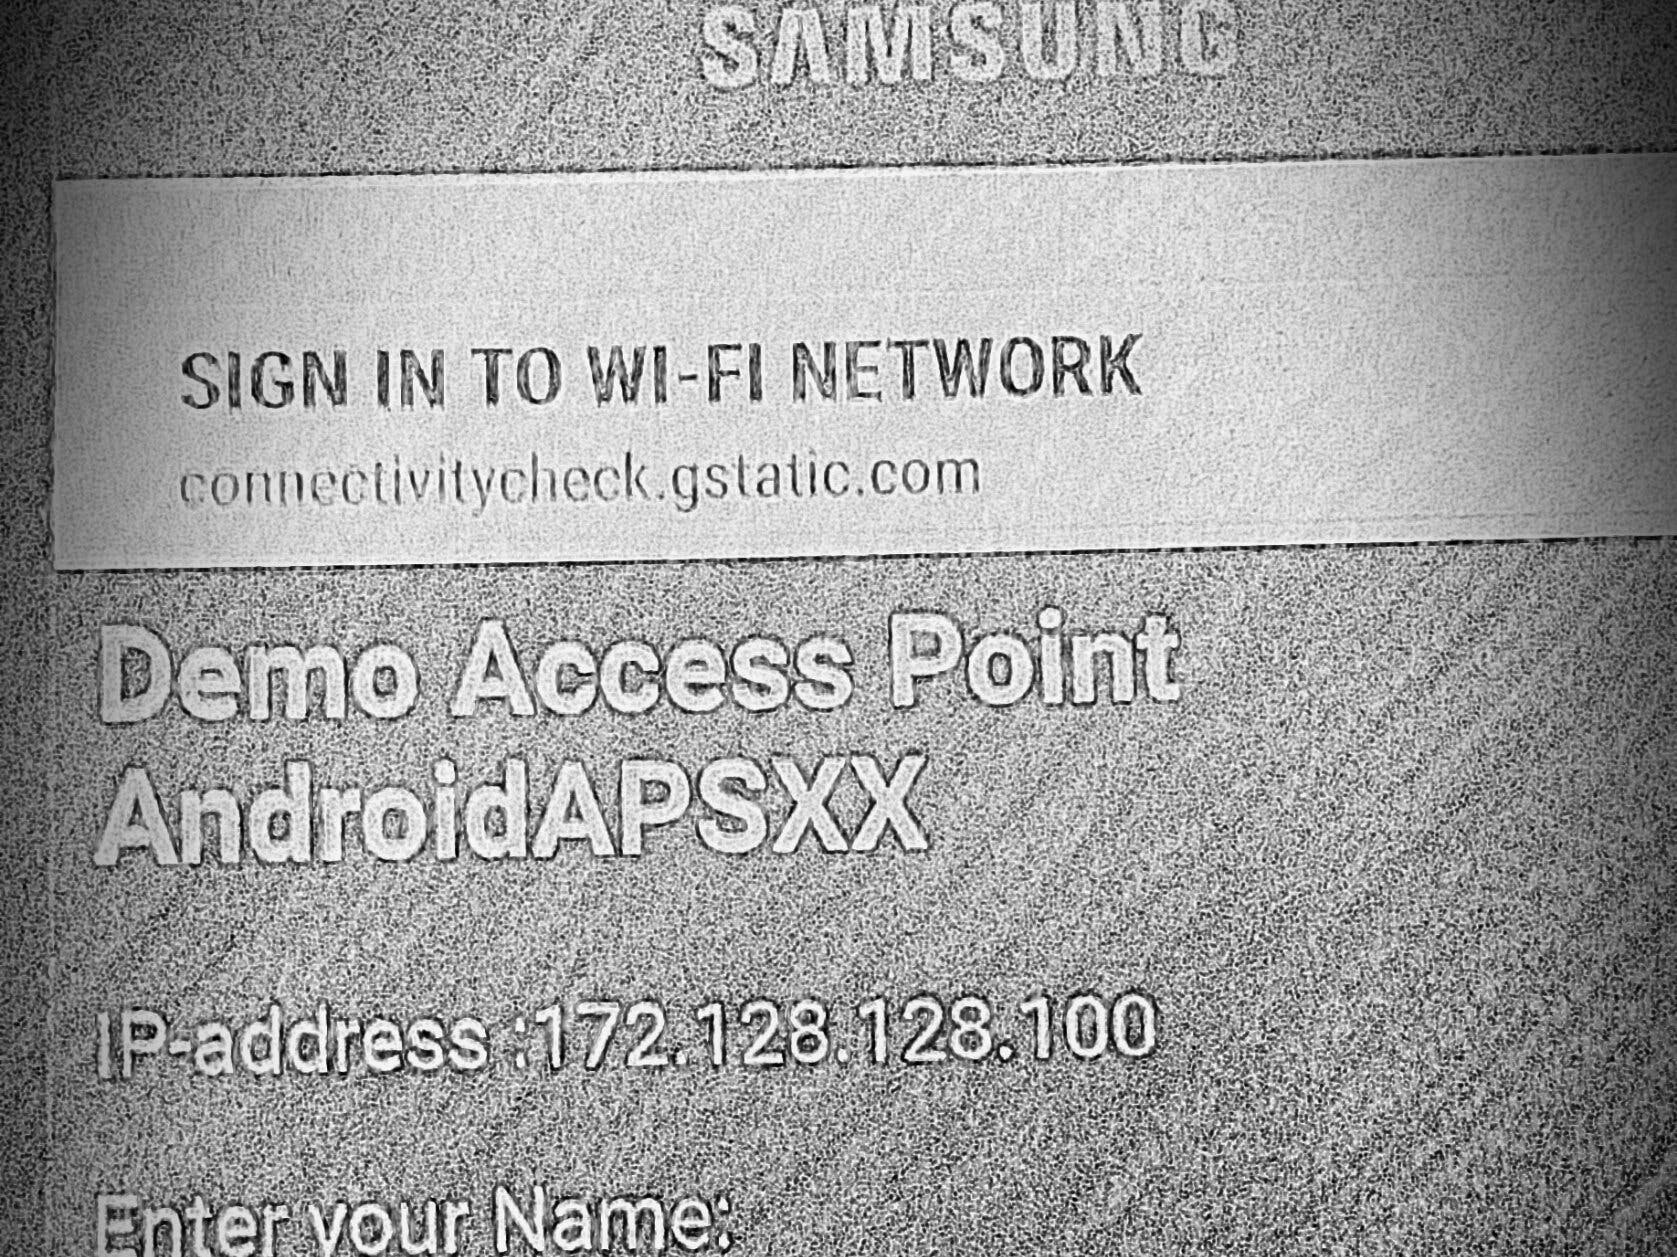 Captive Portal for WiFi AP